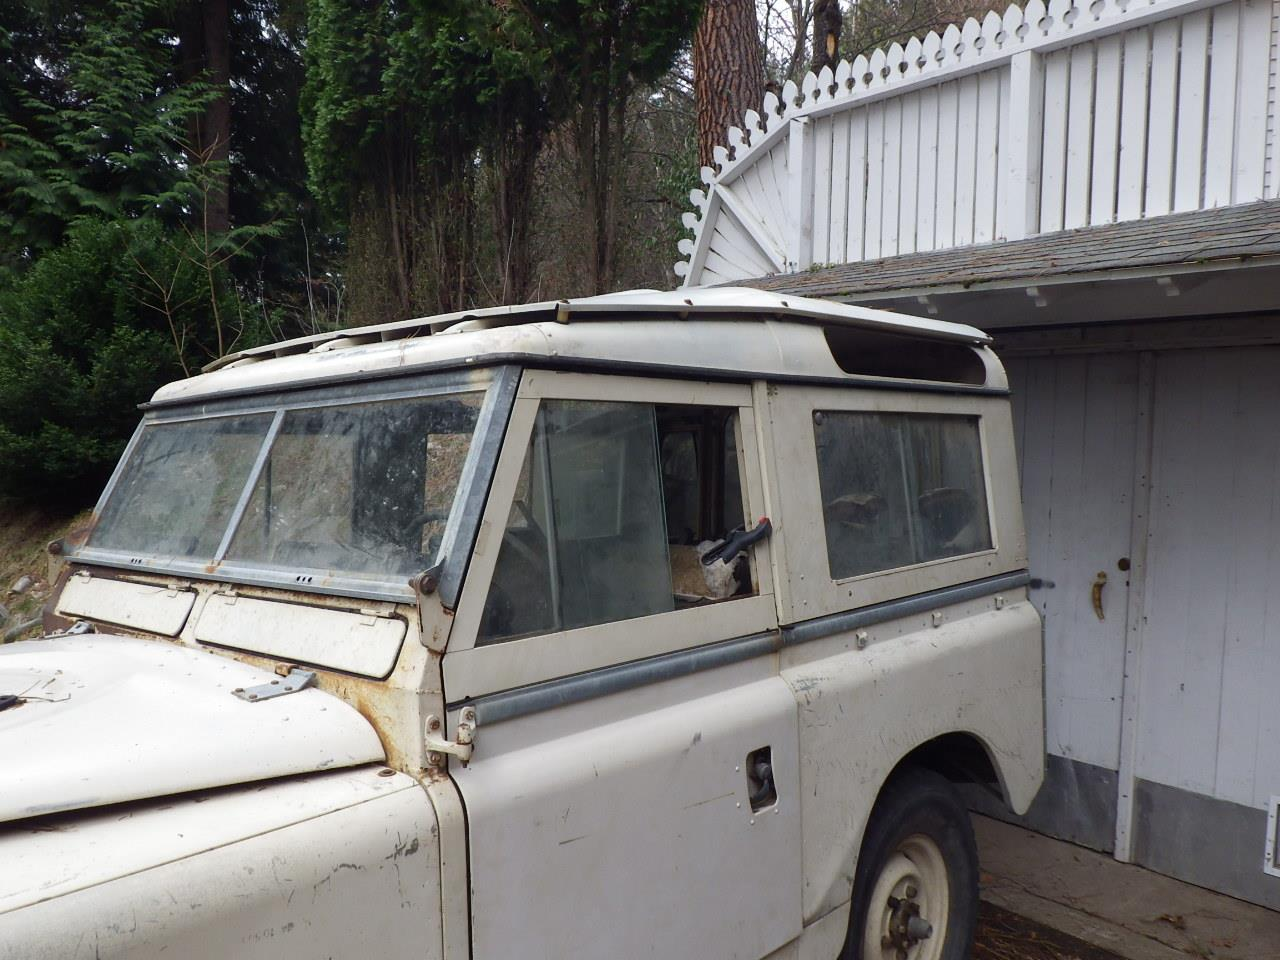 Large Picture of Classic '64 Series IIA located in Bonners Ferry Idaho - $5,400.00 Offered by a Private Seller - E8JT